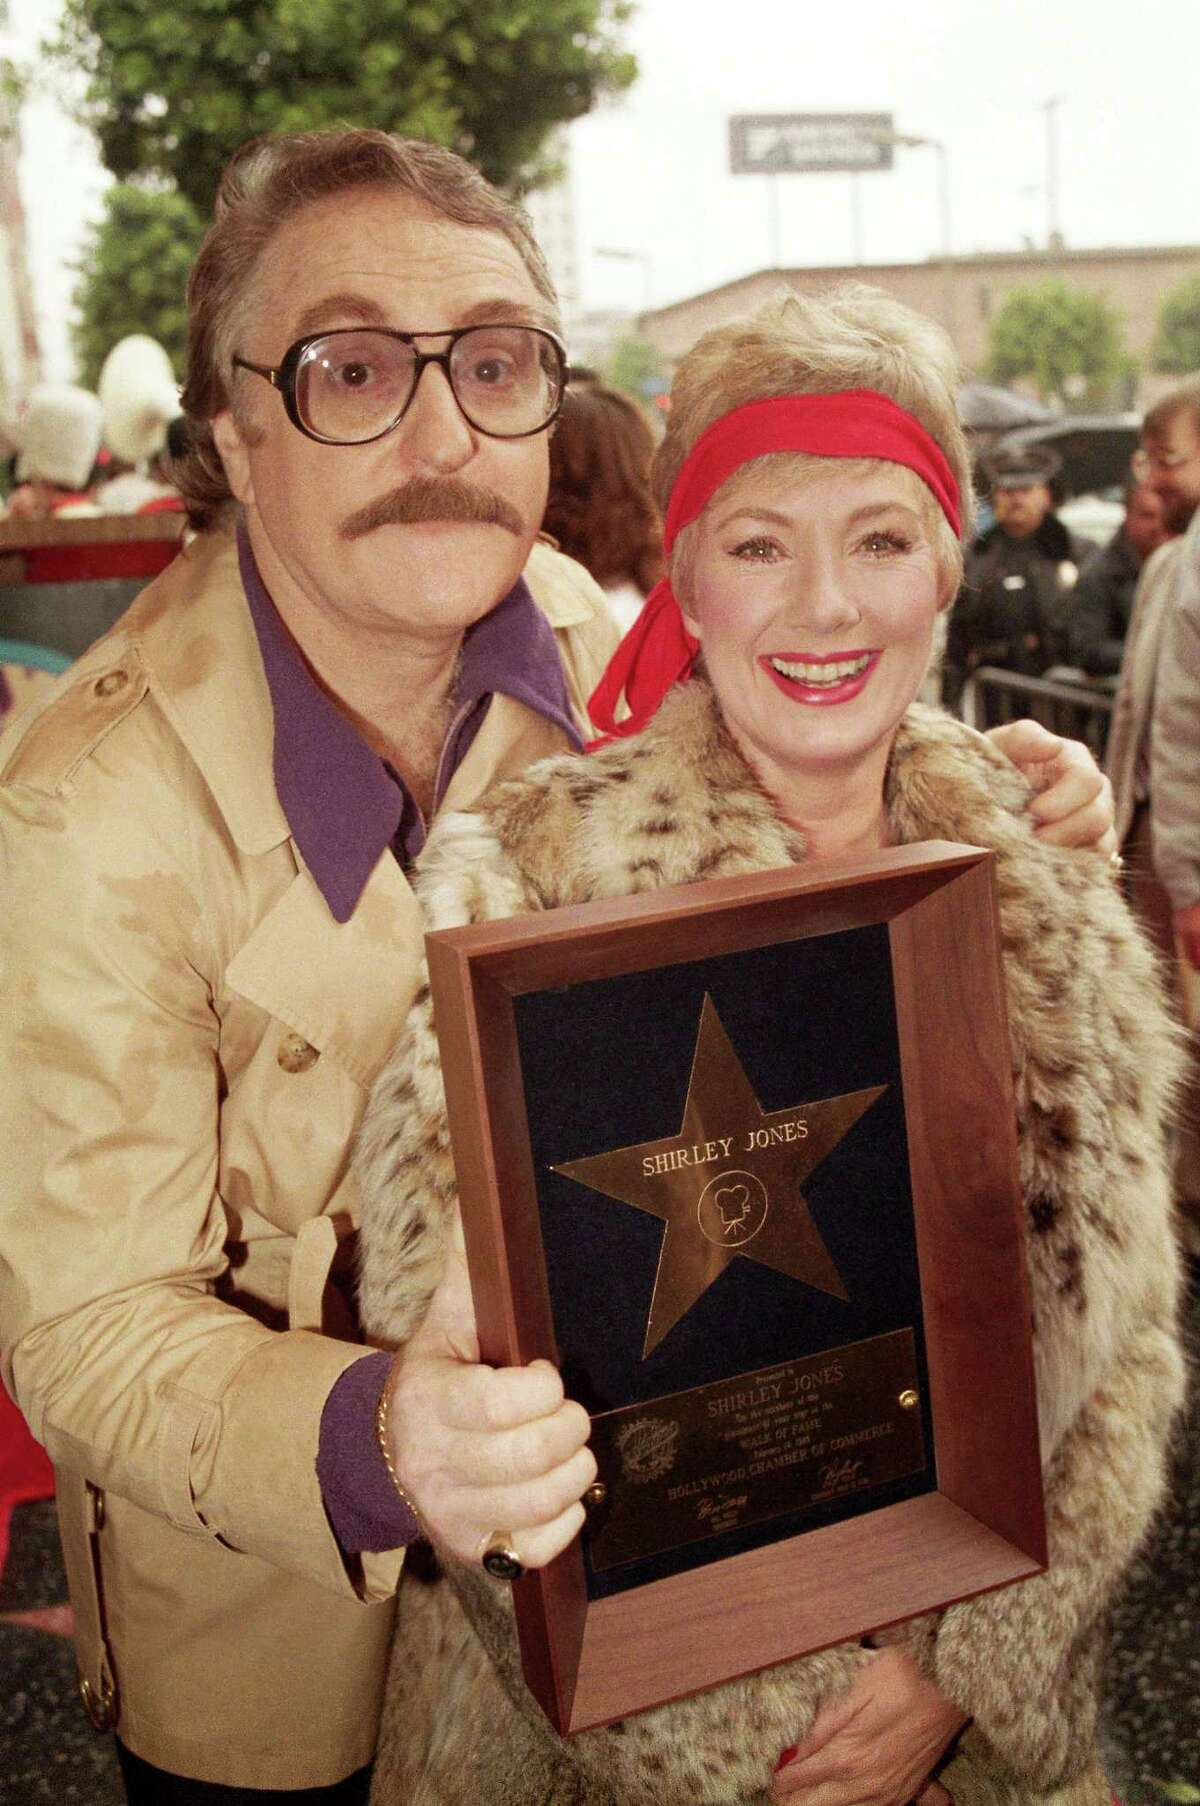 In this Feb. 14, 1986 file photo, actress Shirley Jones poses with her husband Marty Ingels with a plaque awarding her with a star on the Hollywood Walk of Fame in Los Angeles. Ingels, a comedian, actor and talent agent who was married to Jones for nearly 40 years, died Wednesday, Oct. 21, 2015, in Los Angeles following complications from a stroke. He was 79.